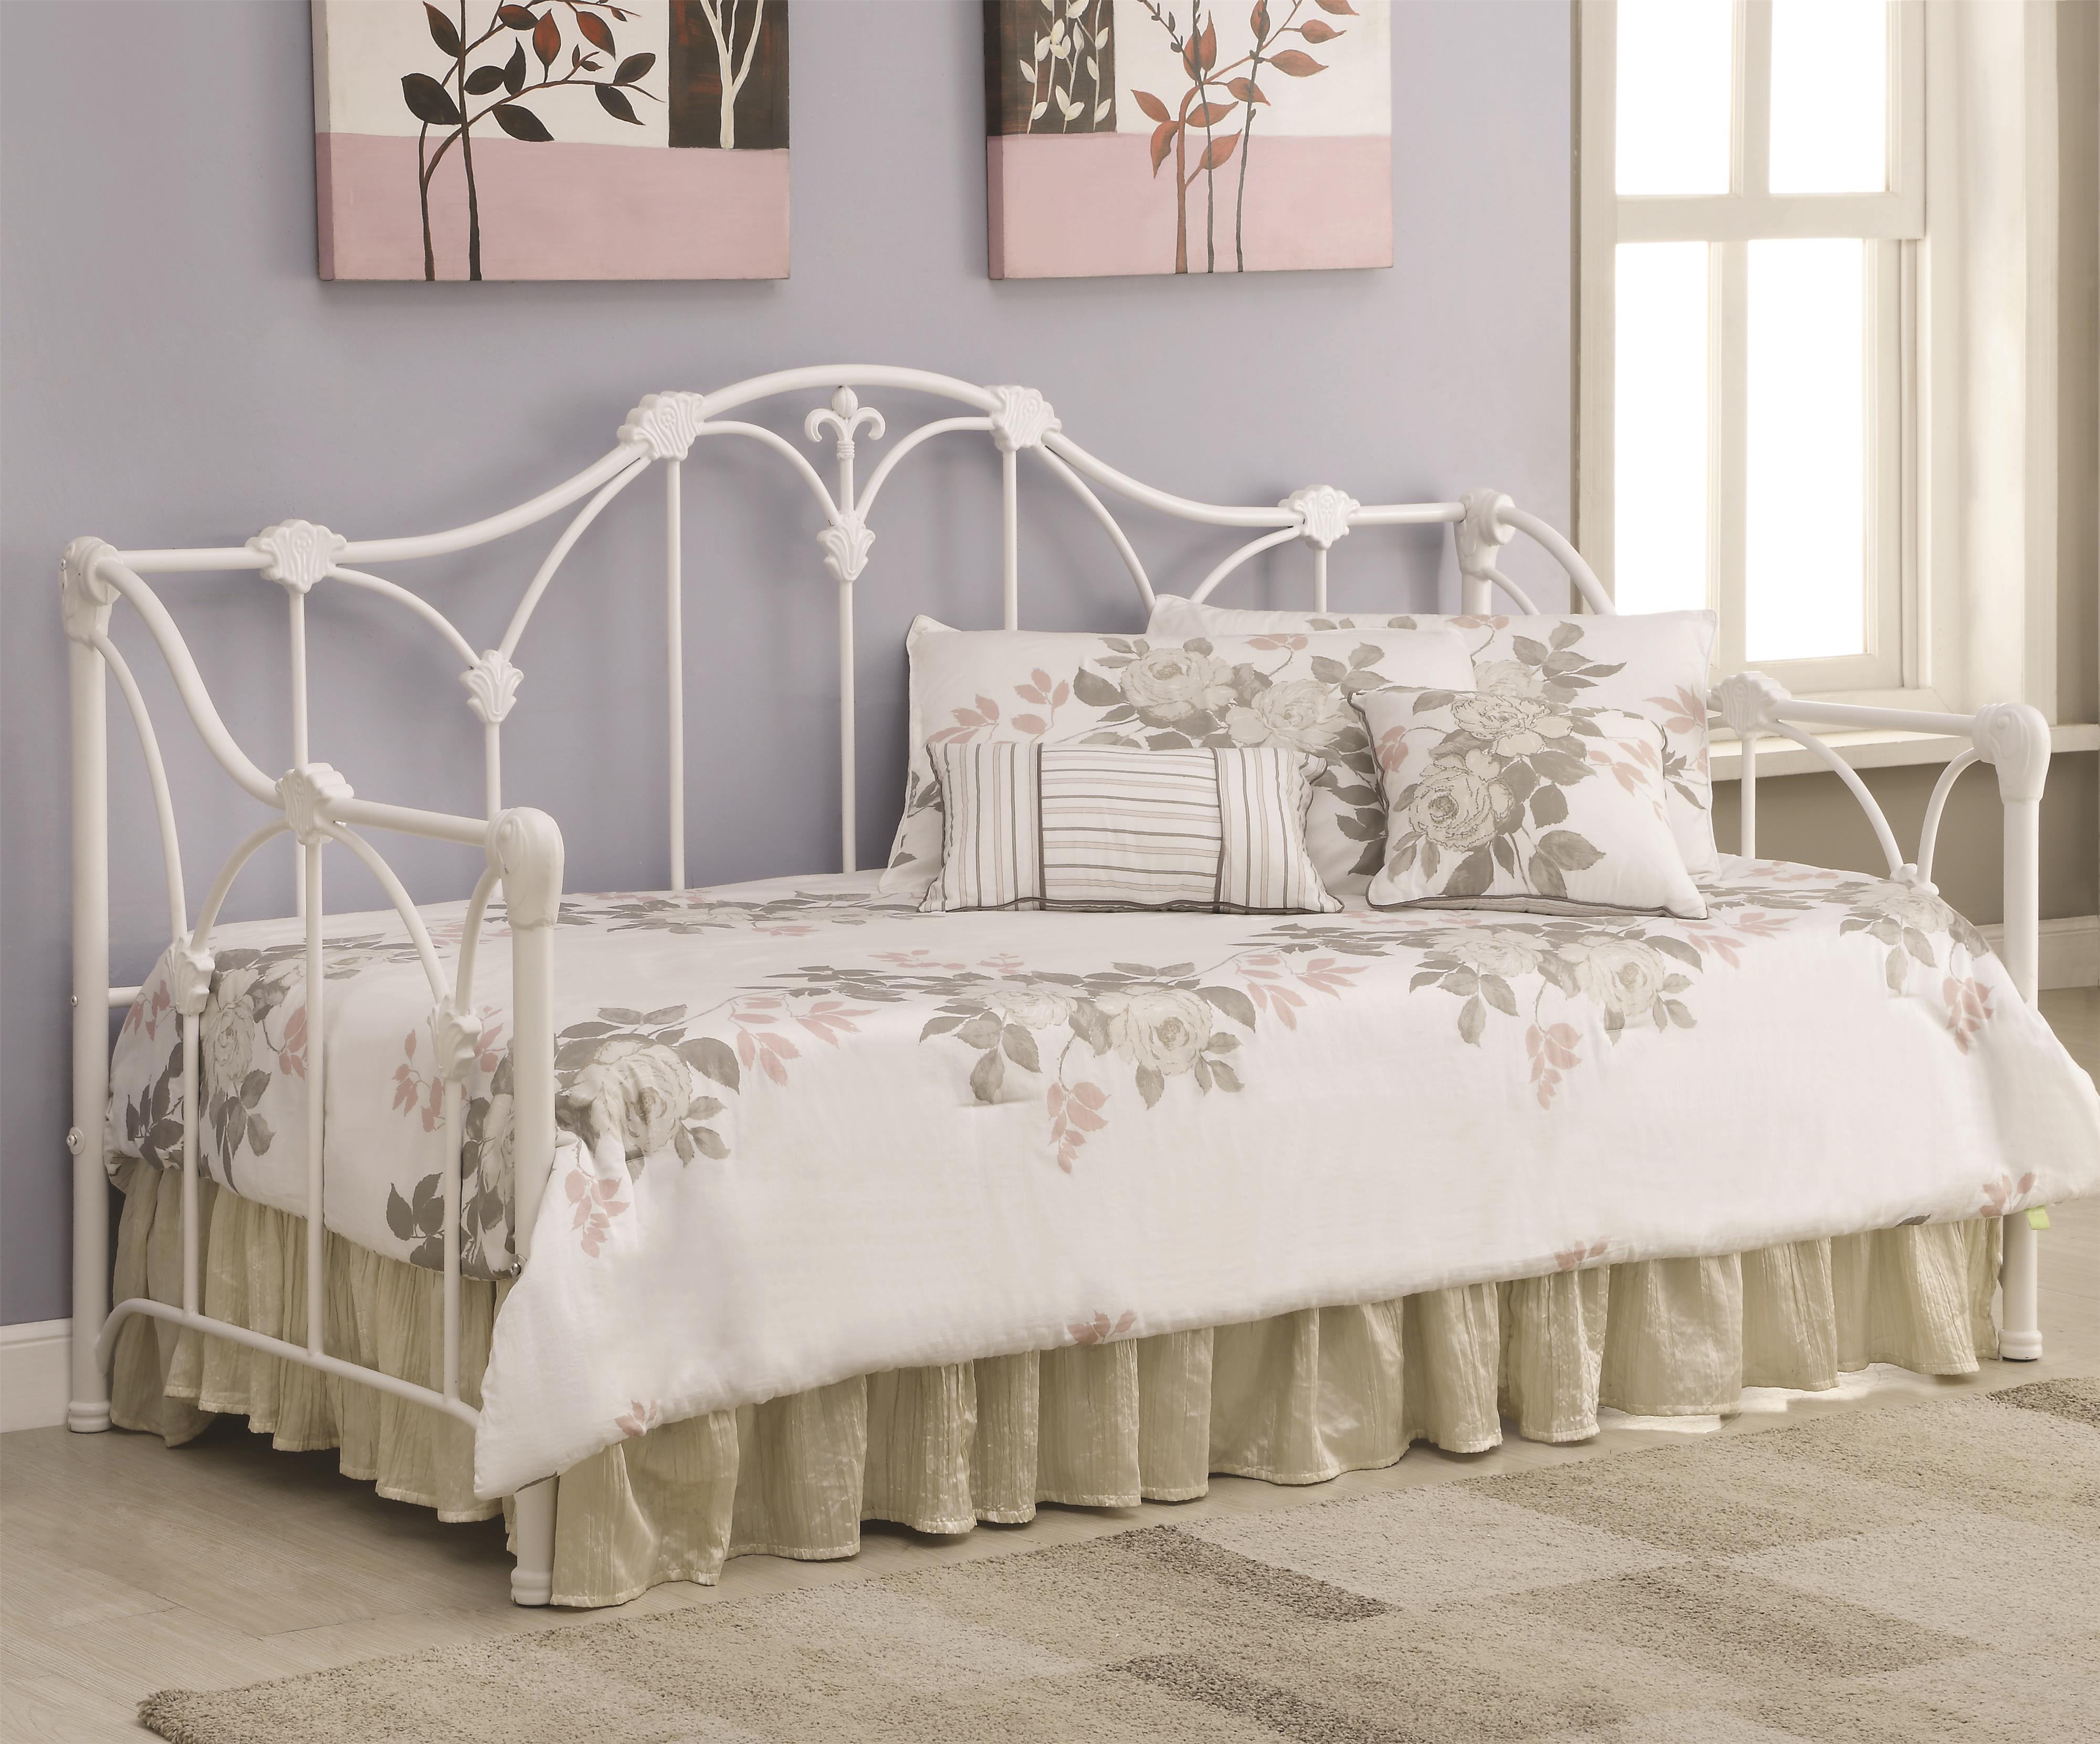 Coaster Daybeds By Coaster 300216 Daybed With Floral White